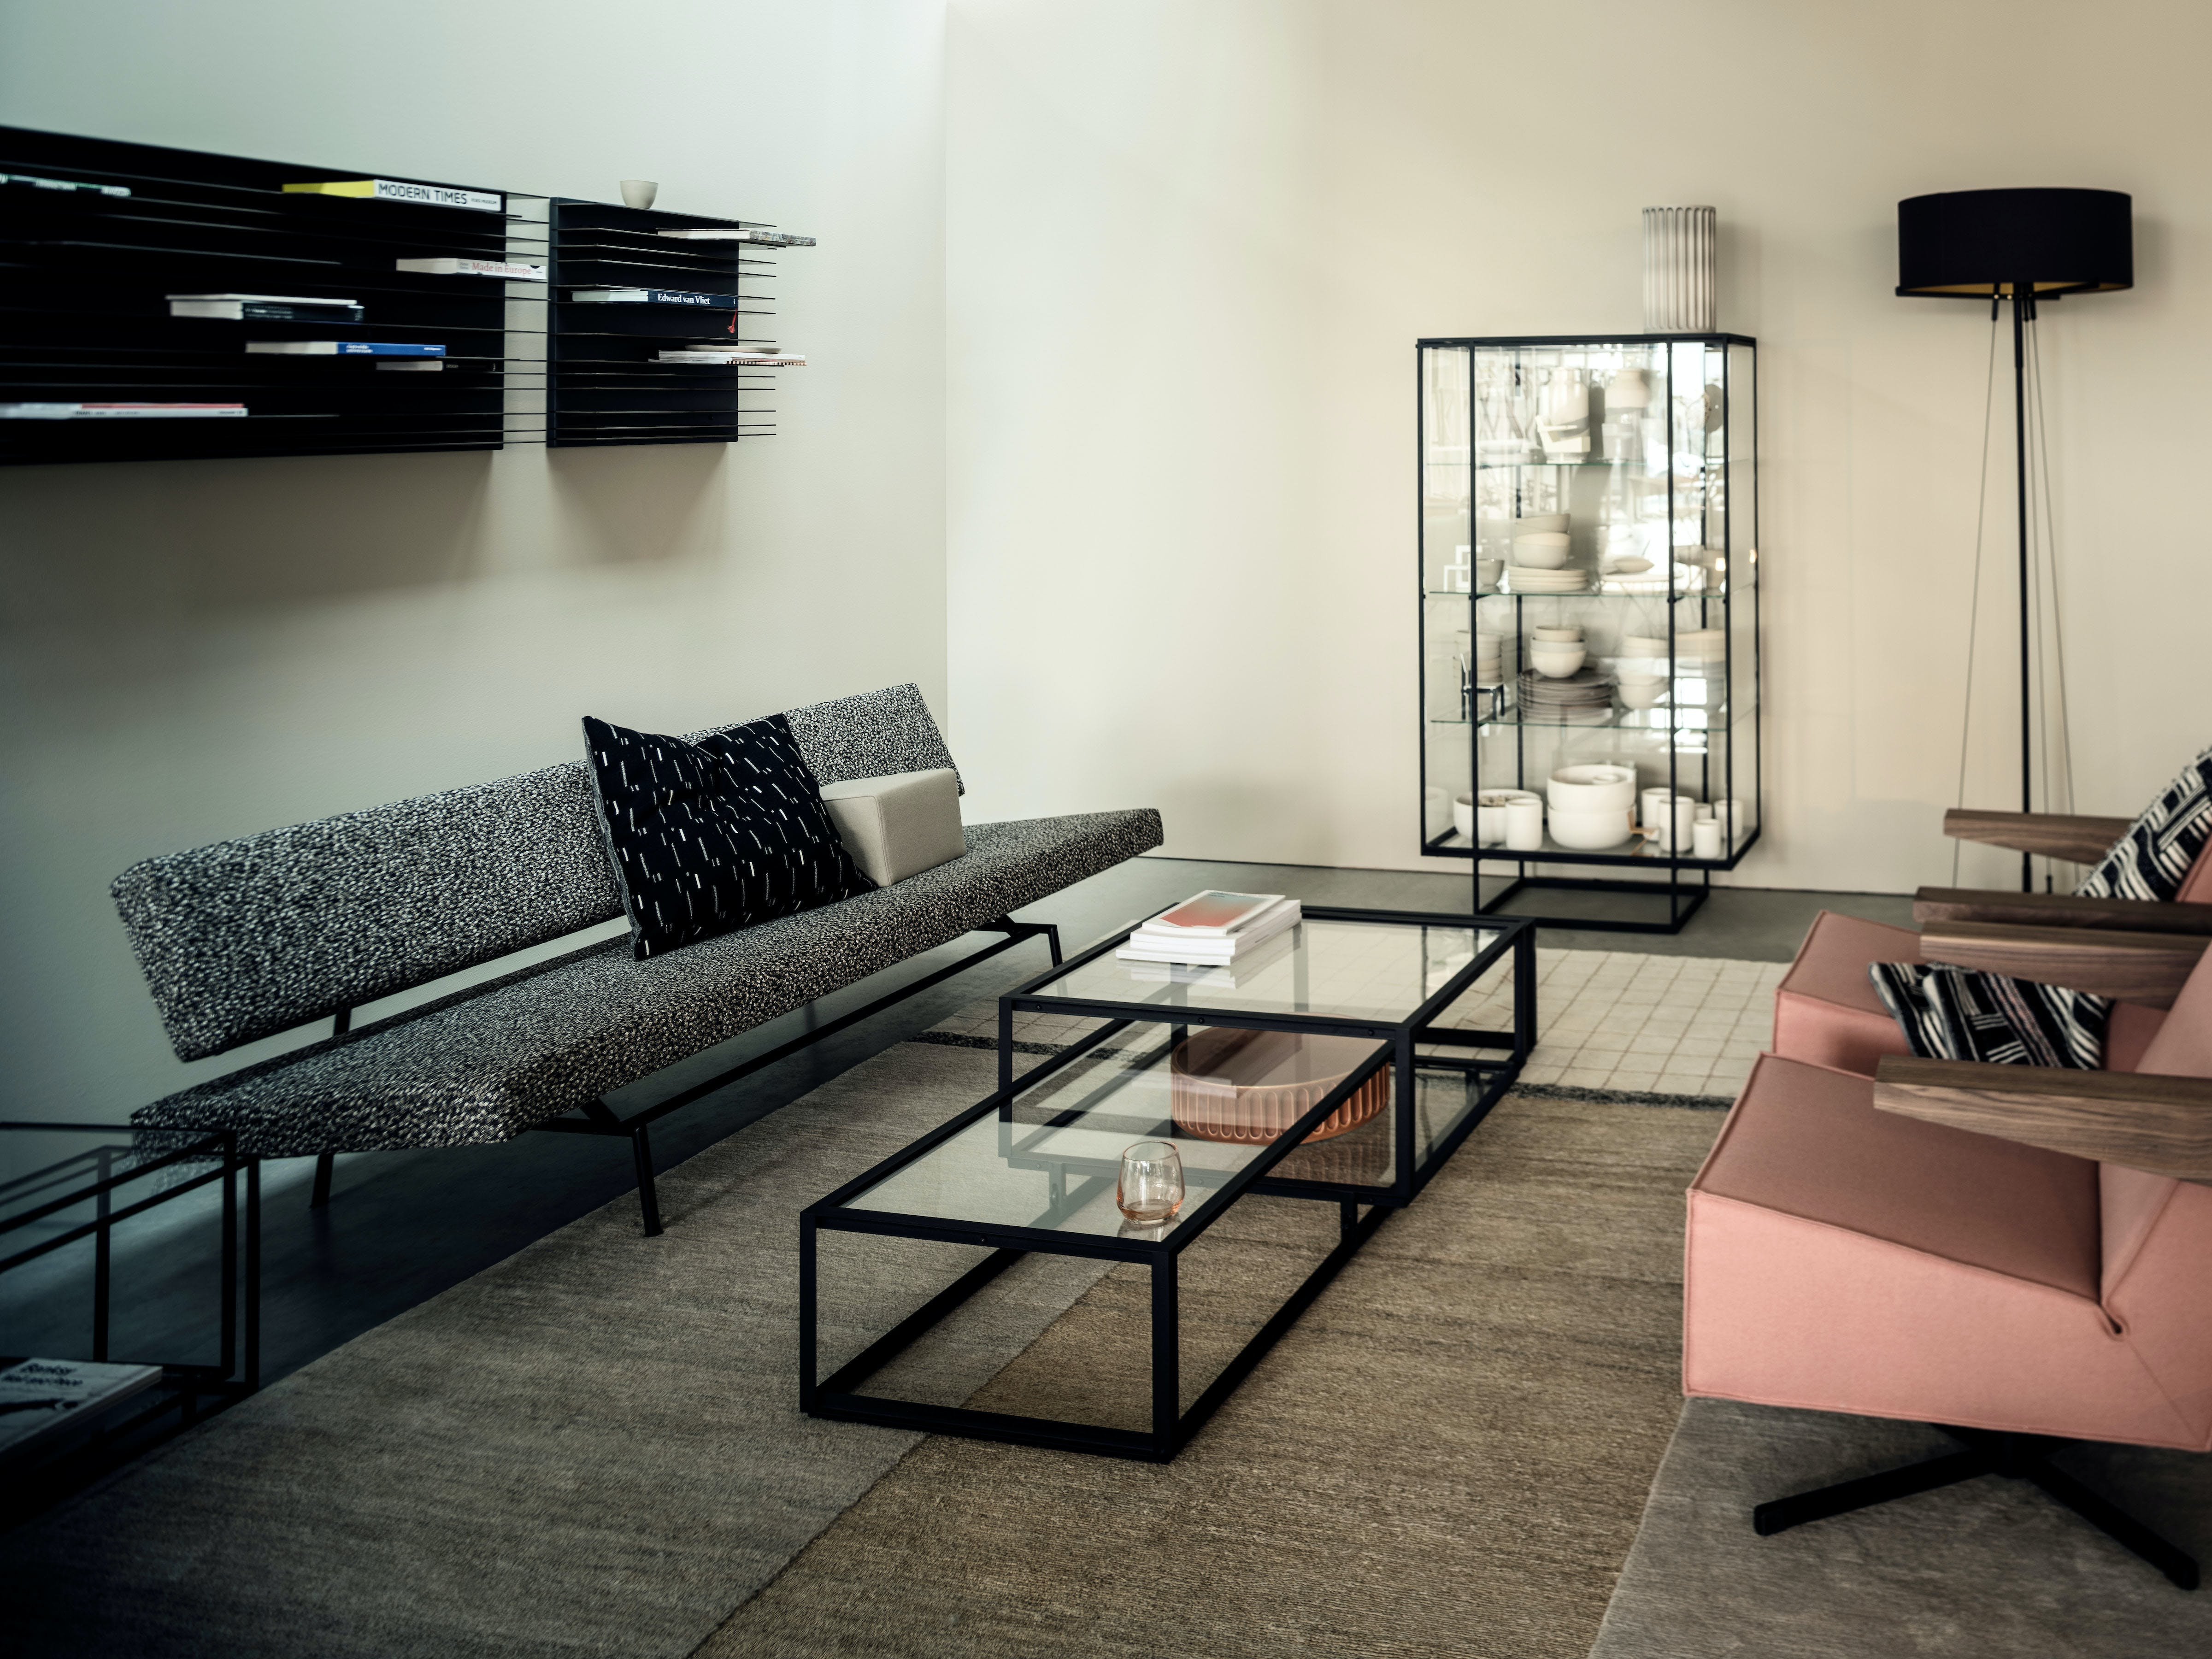 Tangled-Coffee-Table-by-Spectrum-now-available-at-Haute-Living